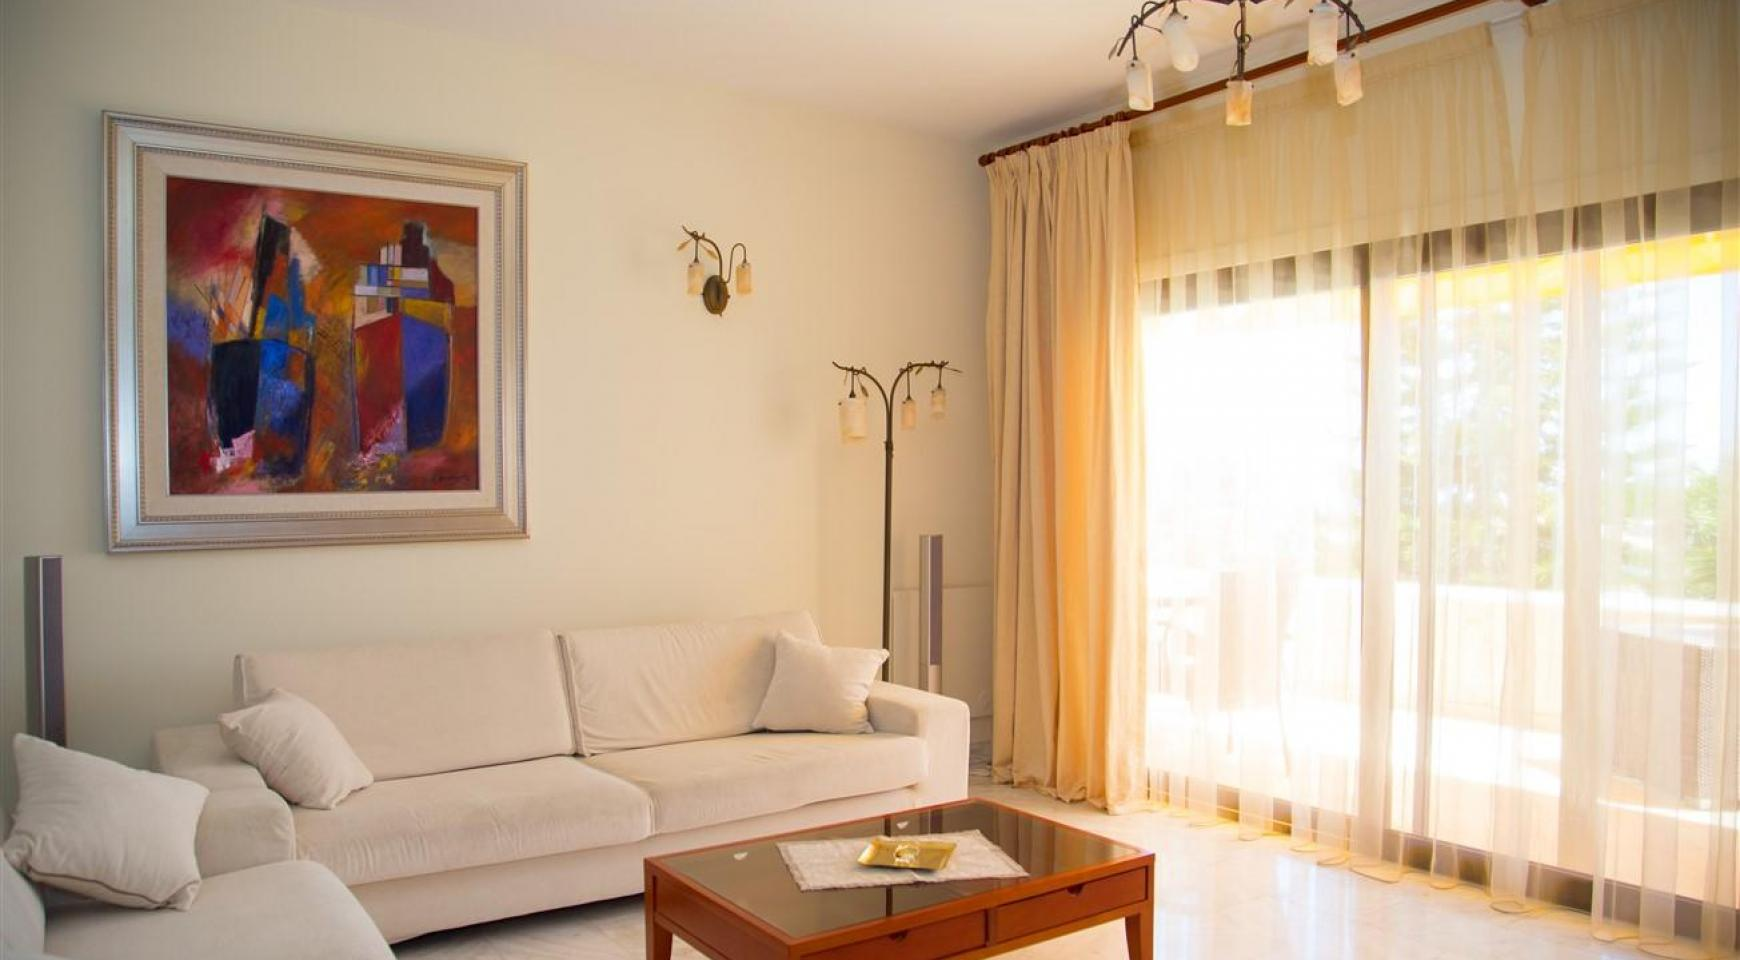 3 Bedroom Apartment in Thera Complex by the Sea - 32